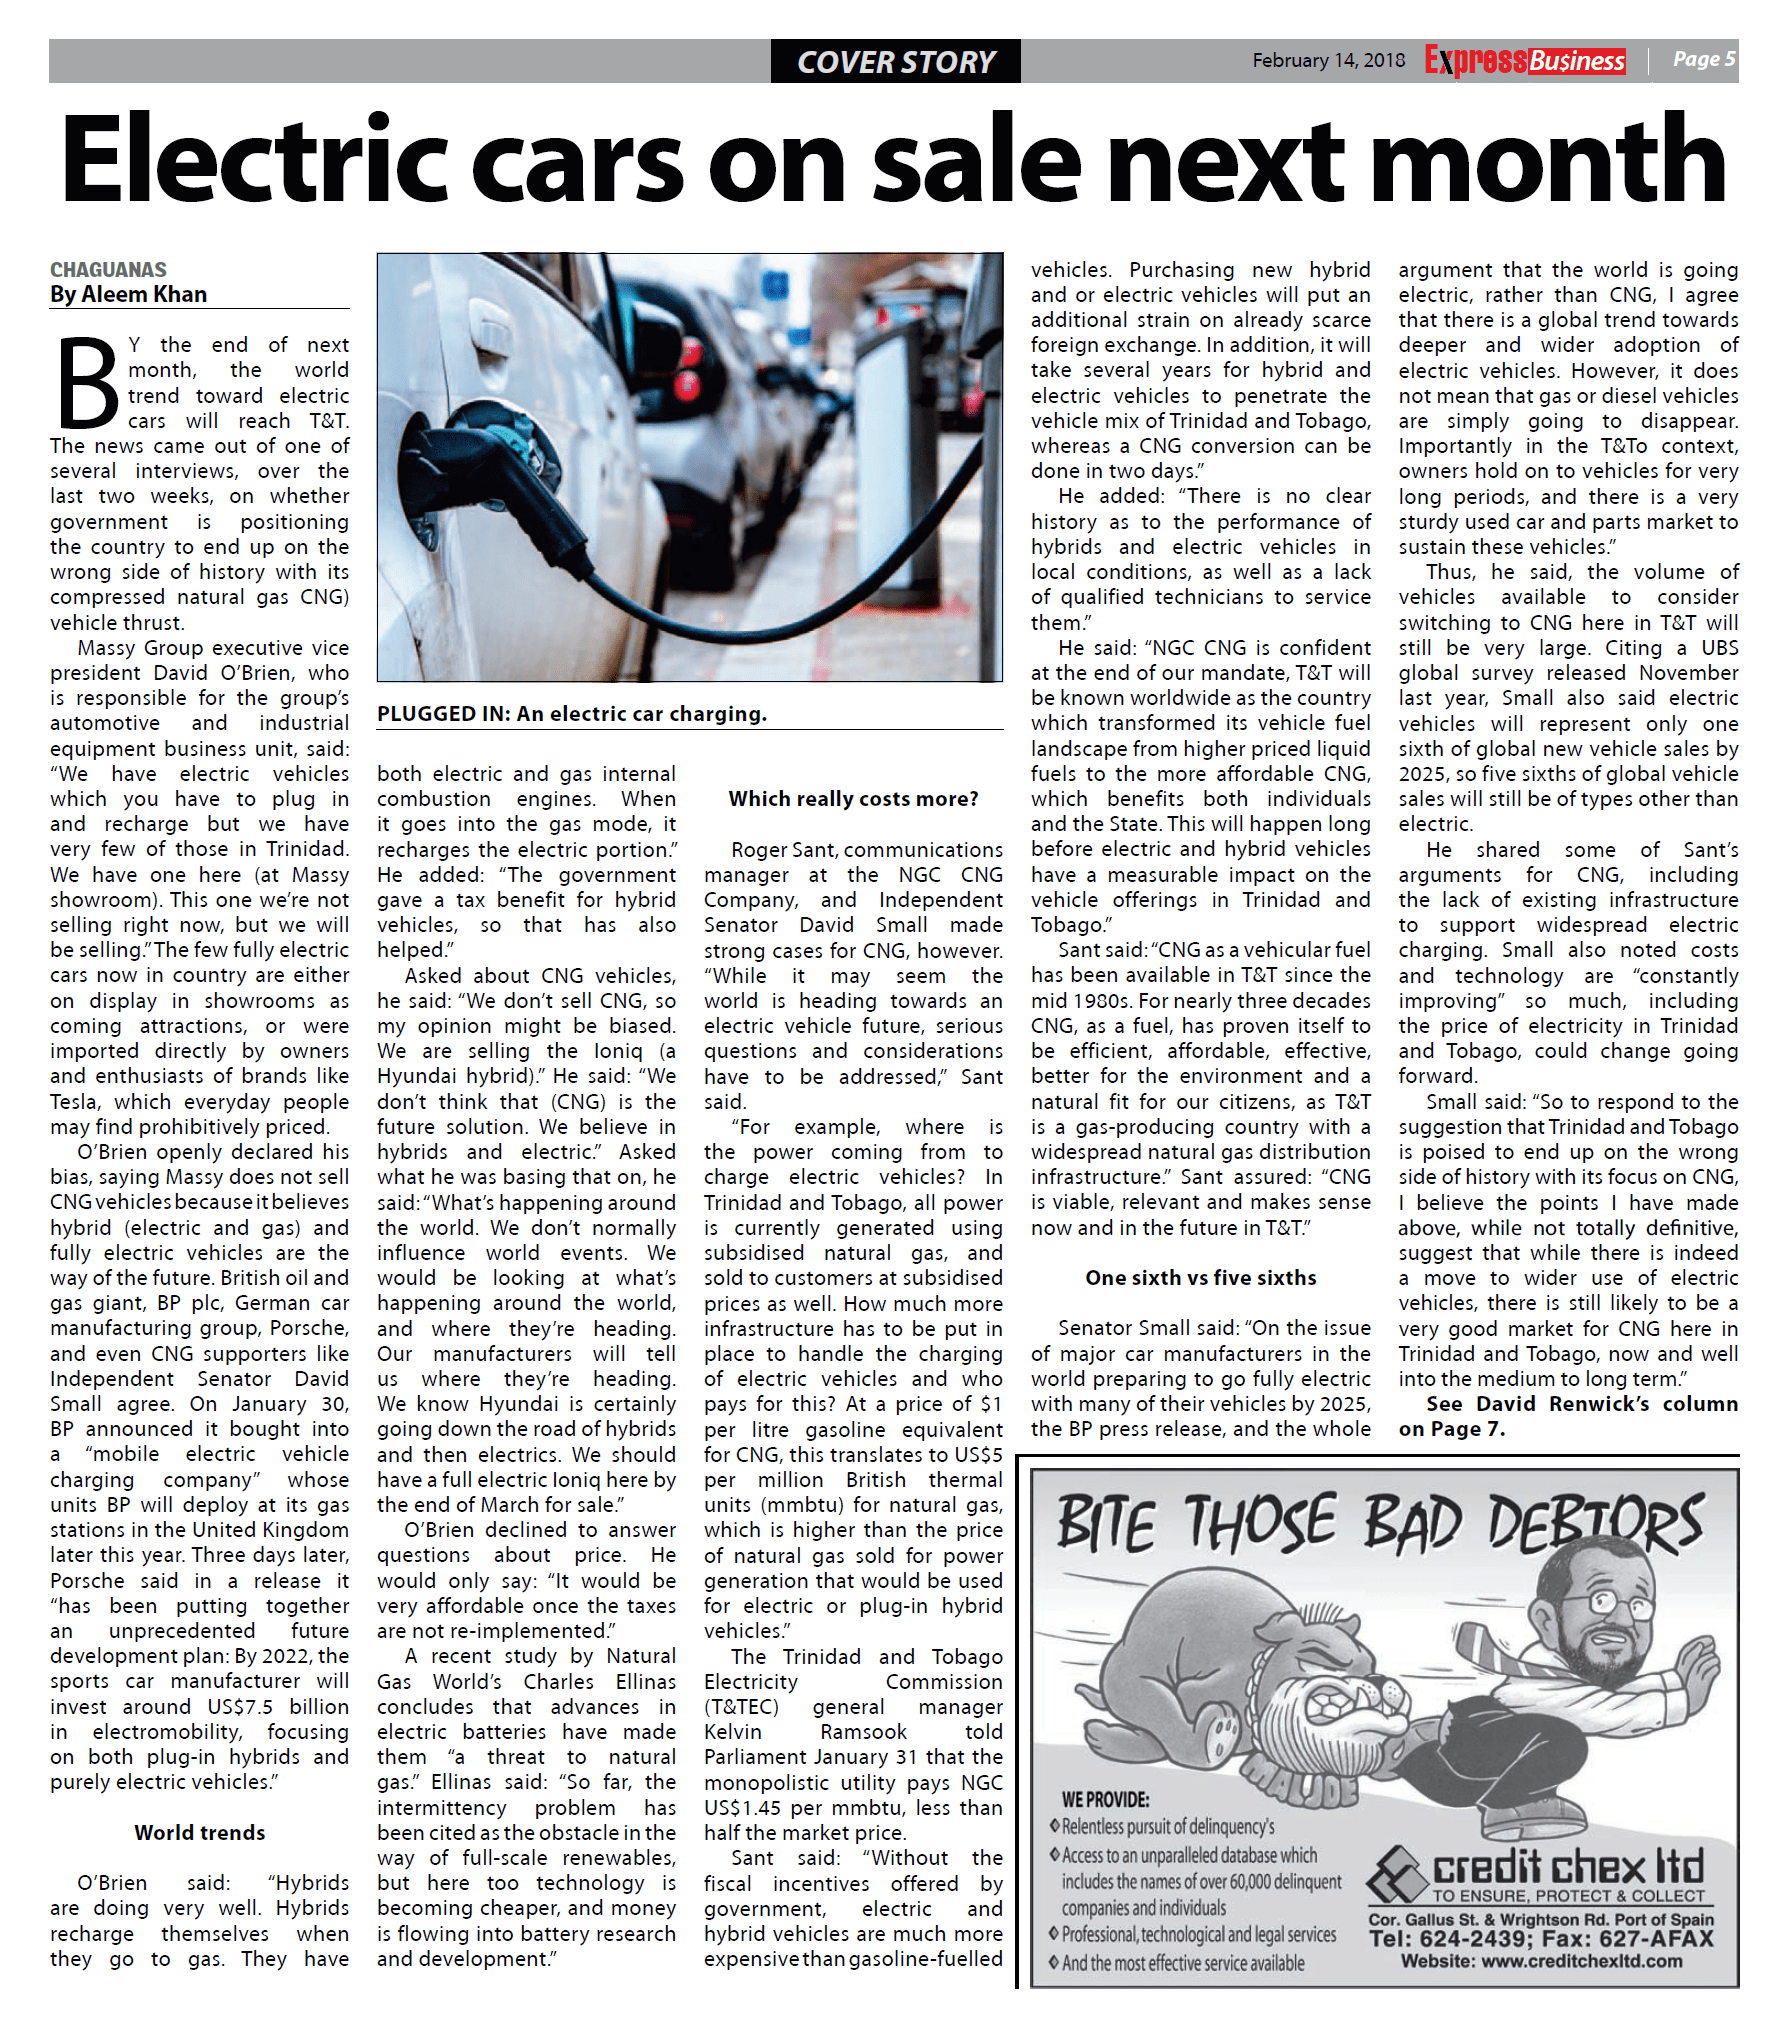 Electric cars on sale next month newspaper clipping